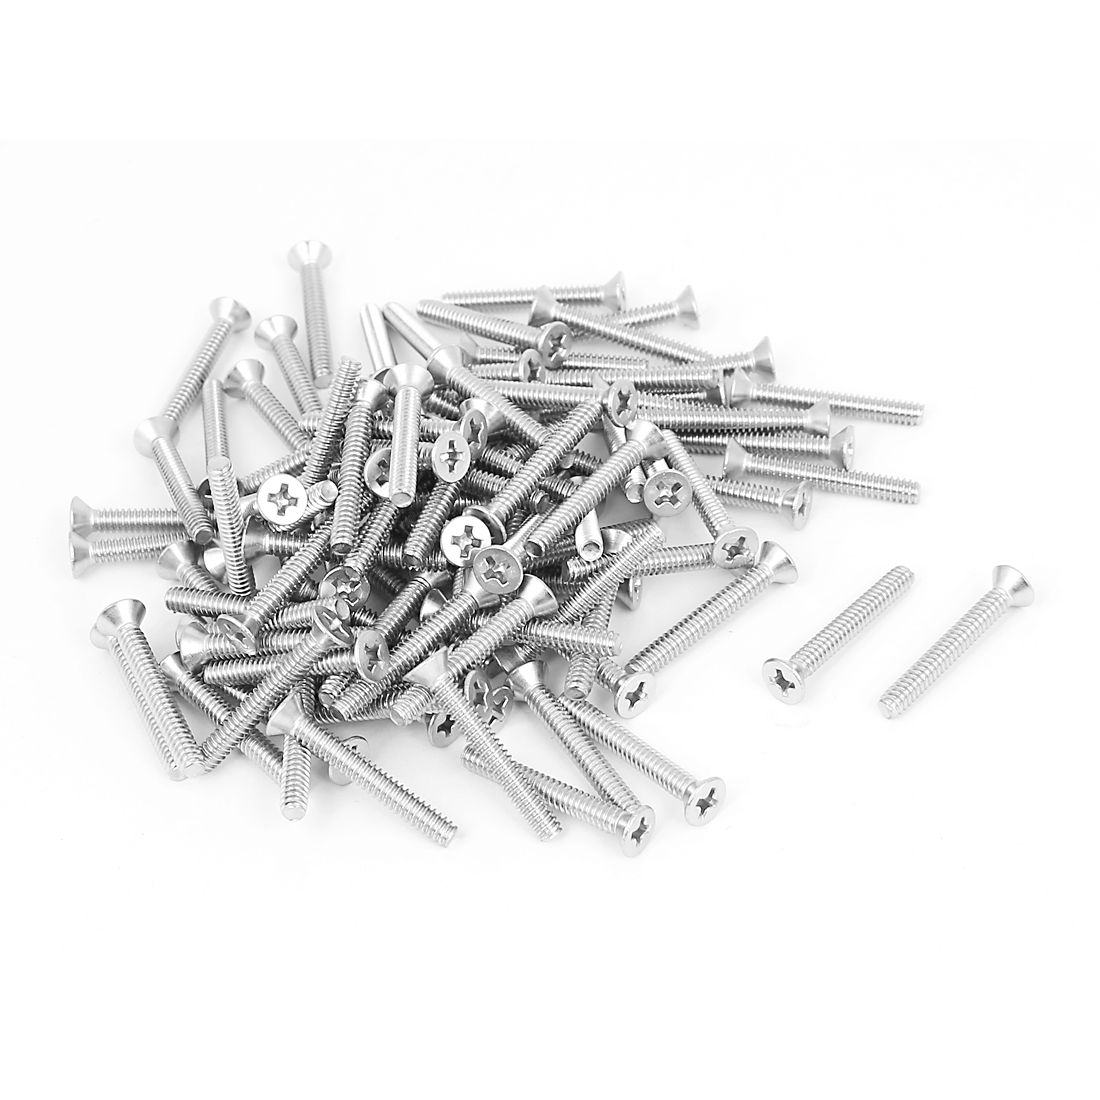 "6#-32x1"" Stainless Steel Phillips Flat Countersunk Head Screws 100pcs"